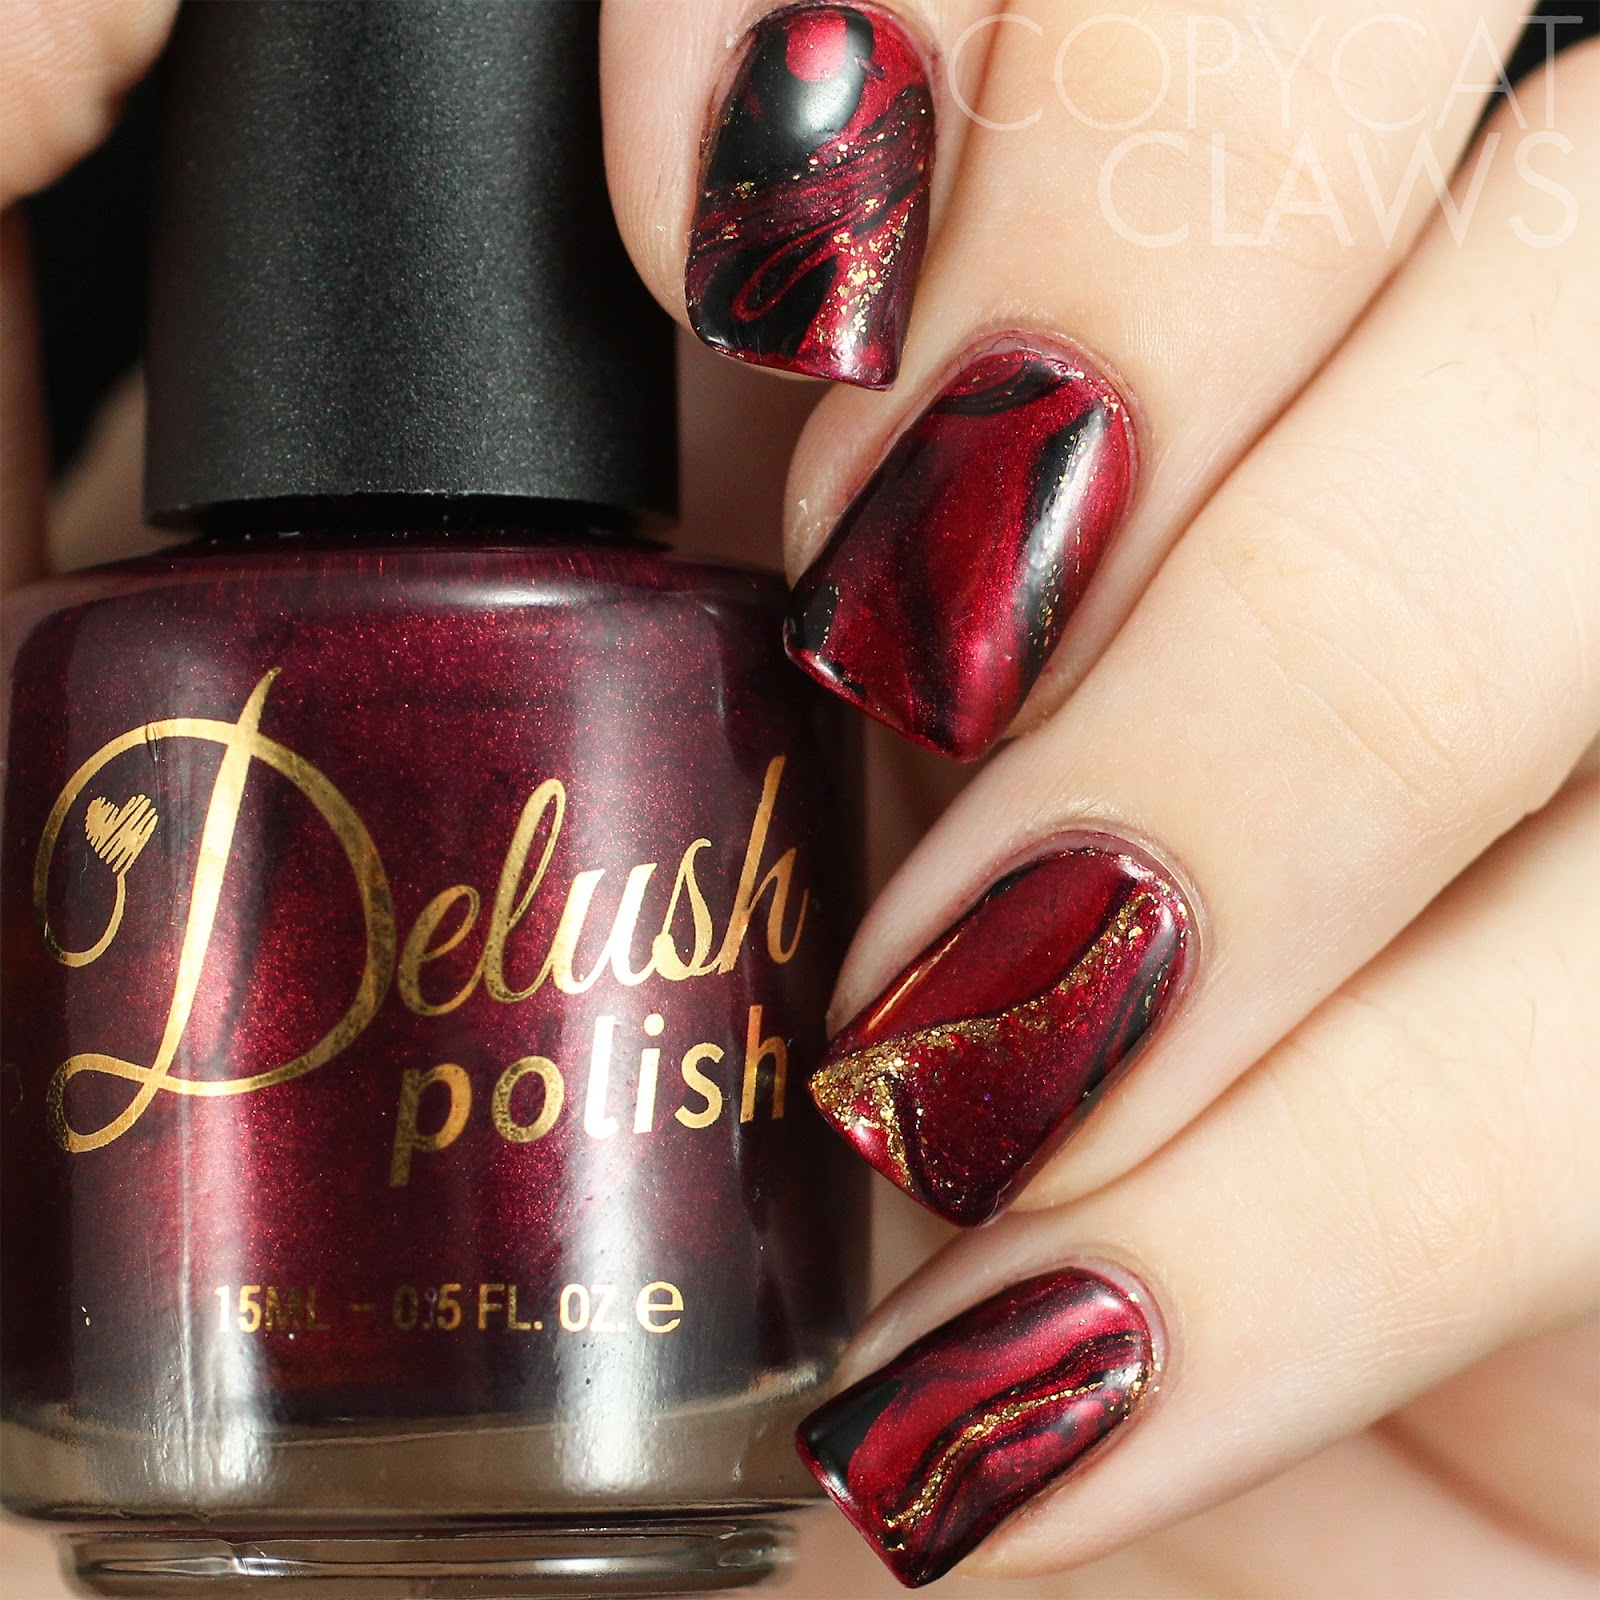 Copycat Claws: The Digit-al Dozen does Vampy: Red and Black Drip Marble